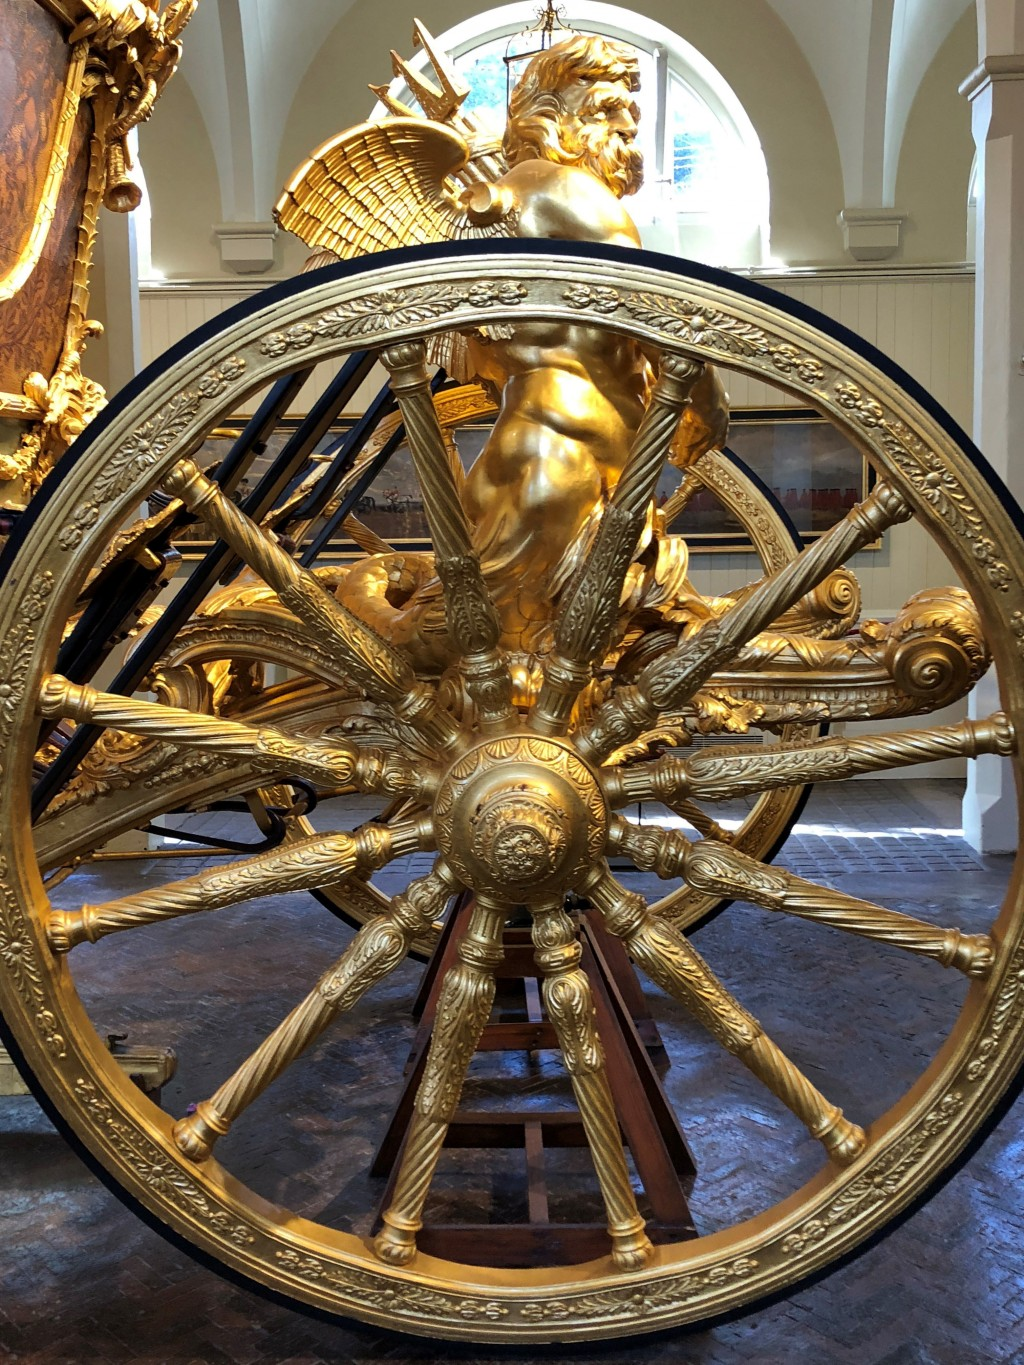 This March 2018 photo shows a detail from the gold state coach in the Royal Mews in London. The site houses stables, a carriage house and a garage for...